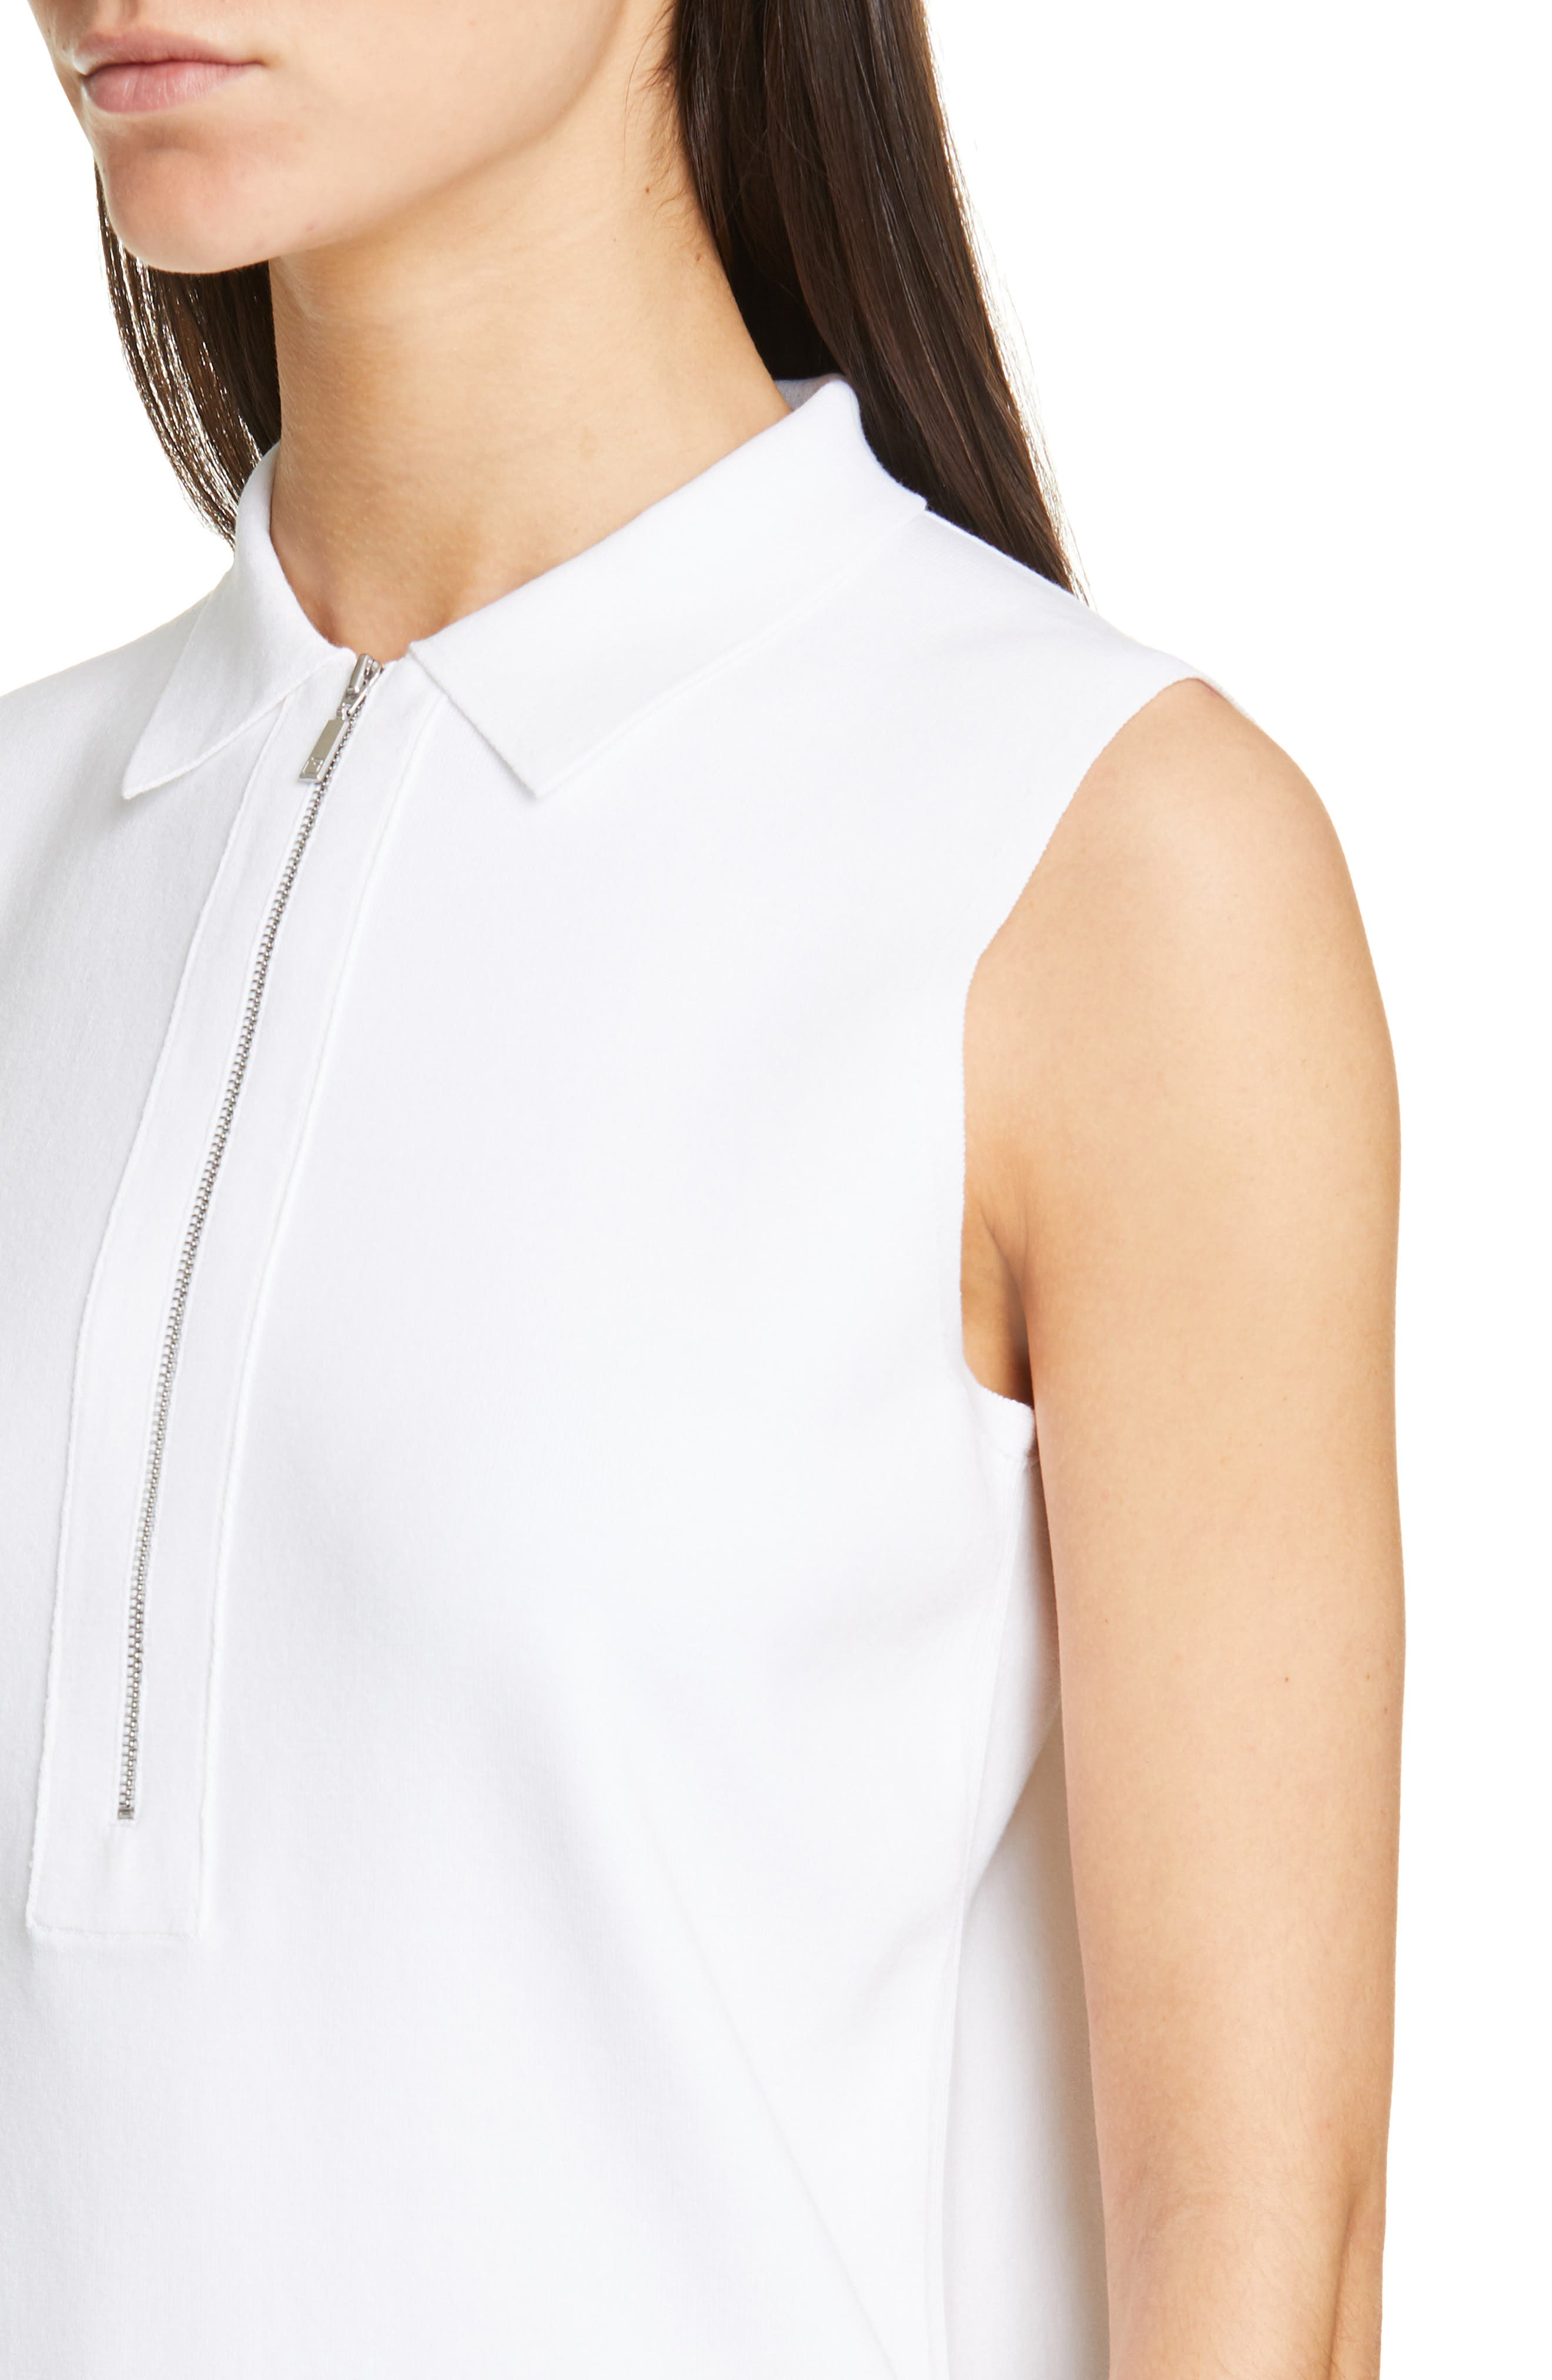 LAFAYETTE 148 NEW YORK, Lafayette Fitted Sleeveless Polo Sweater, Alternate thumbnail 4, color, WHITE